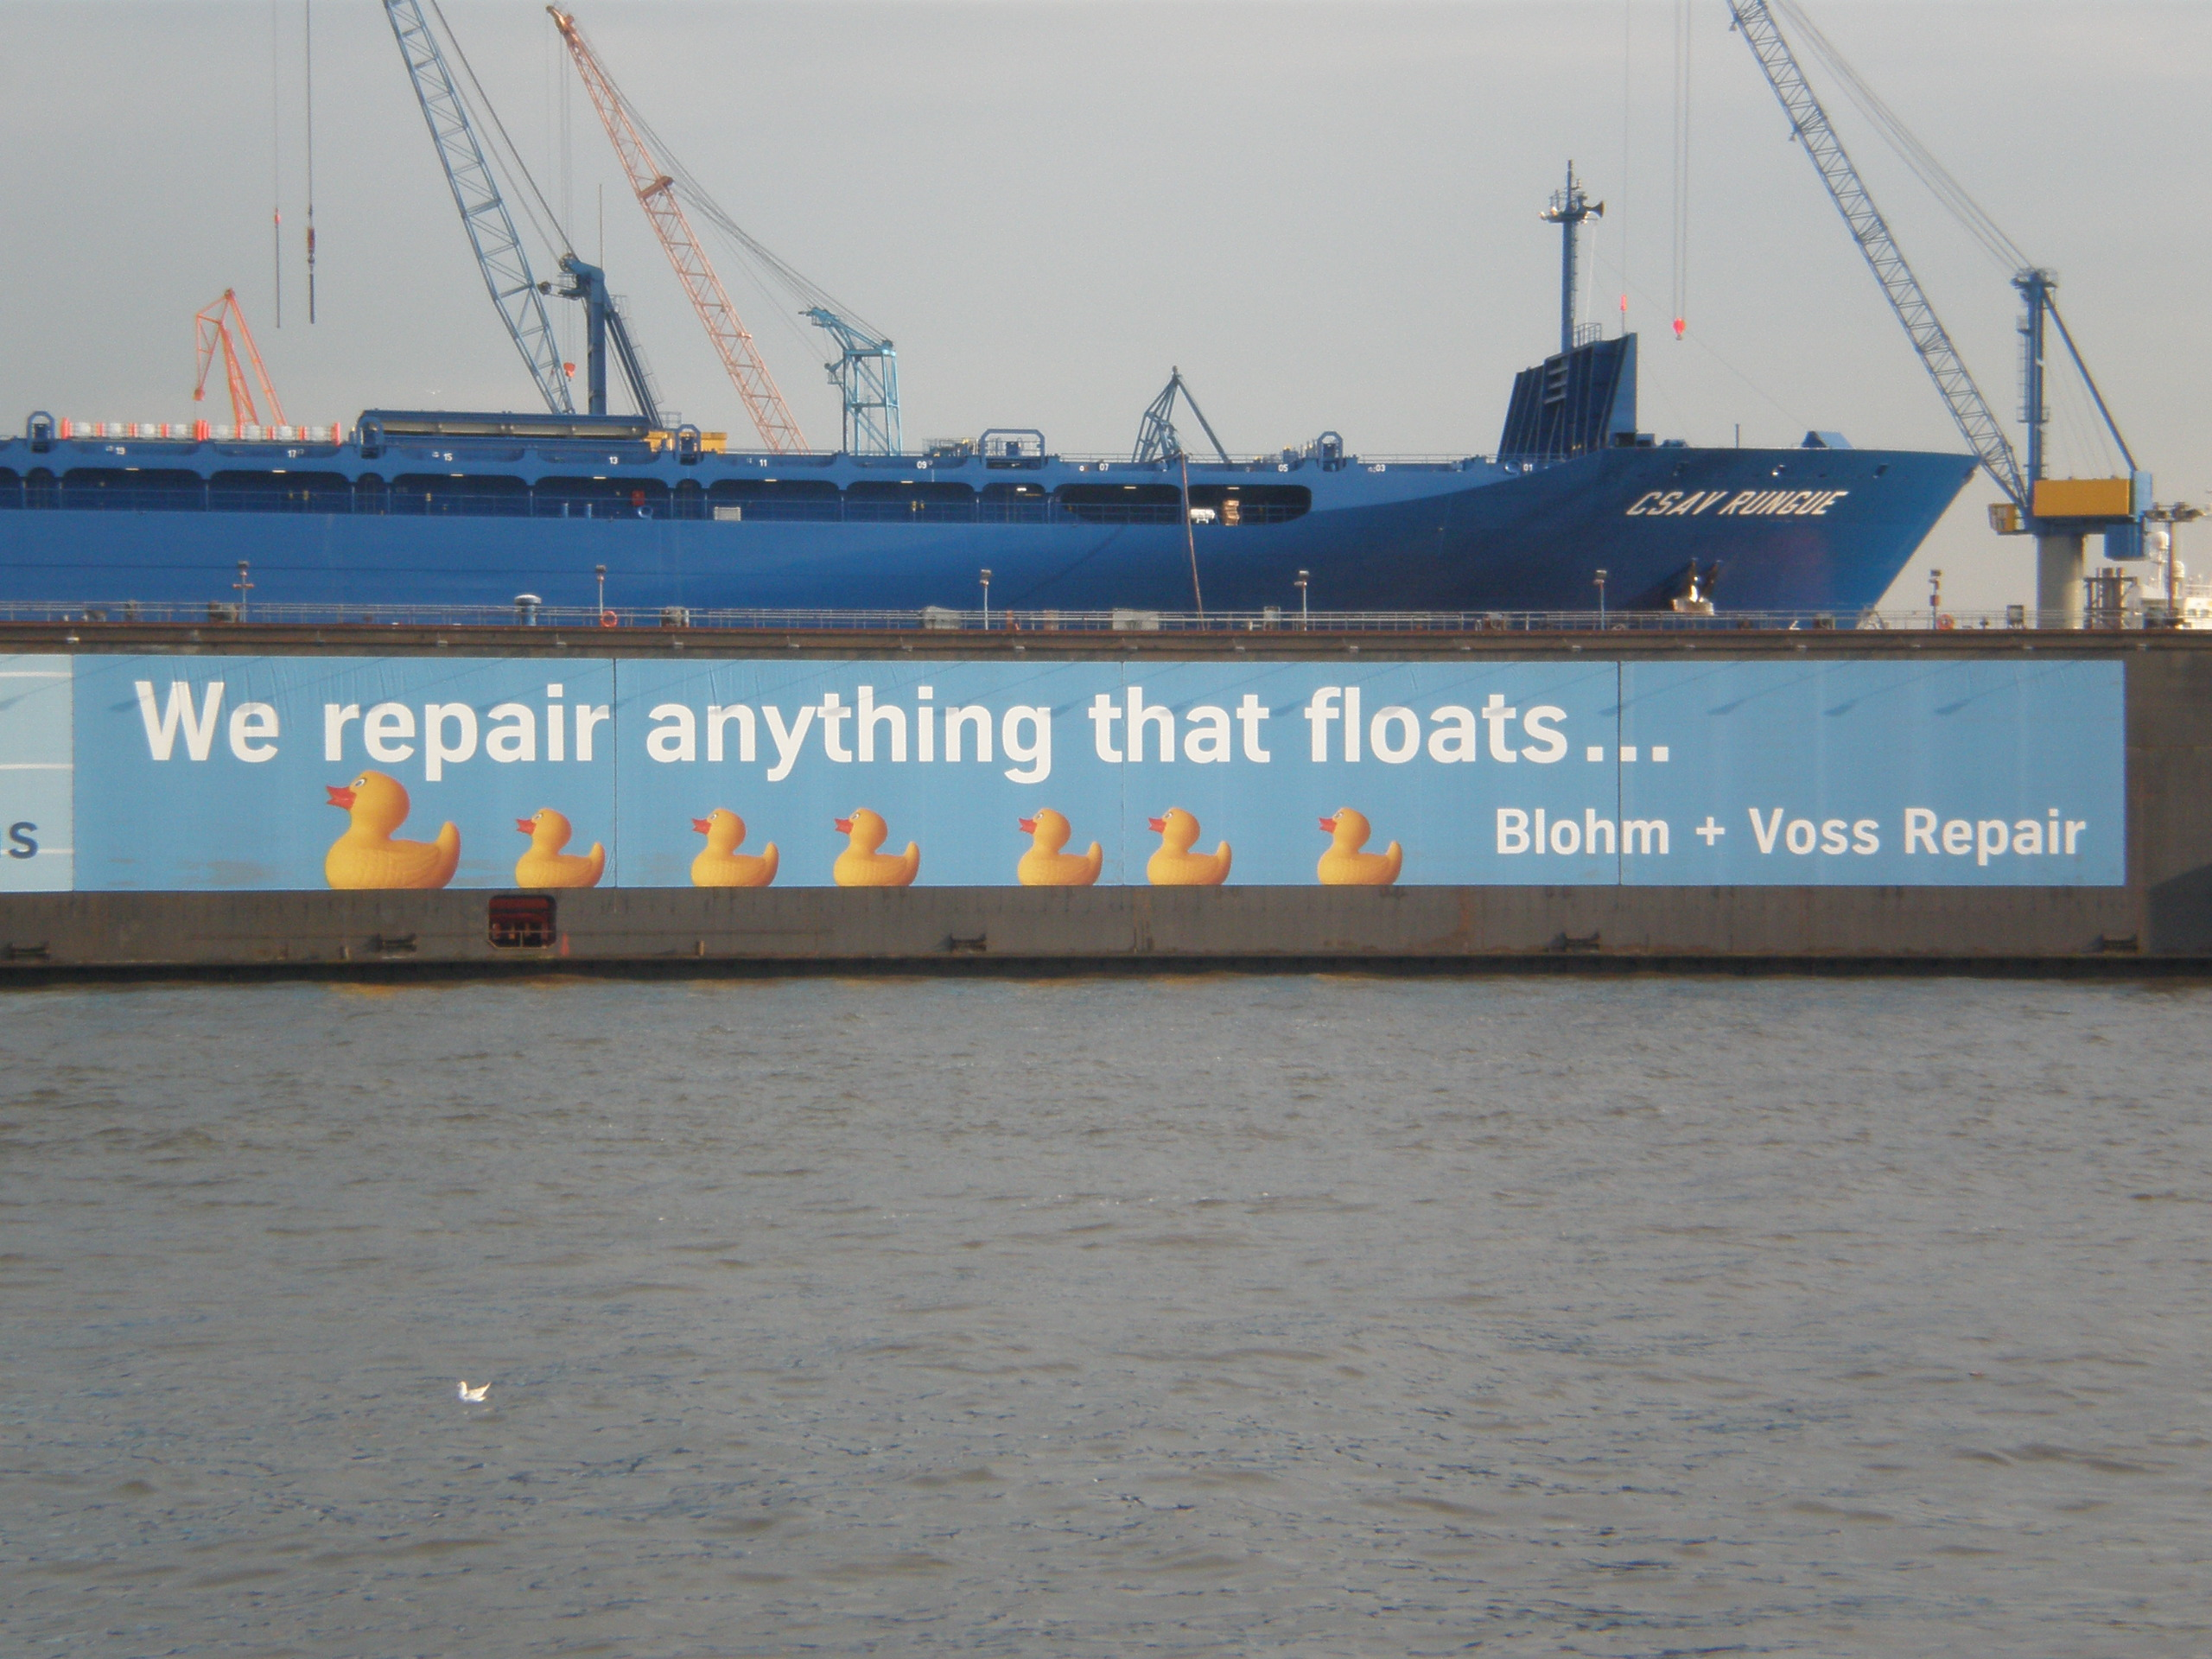 We repair anything that floats...